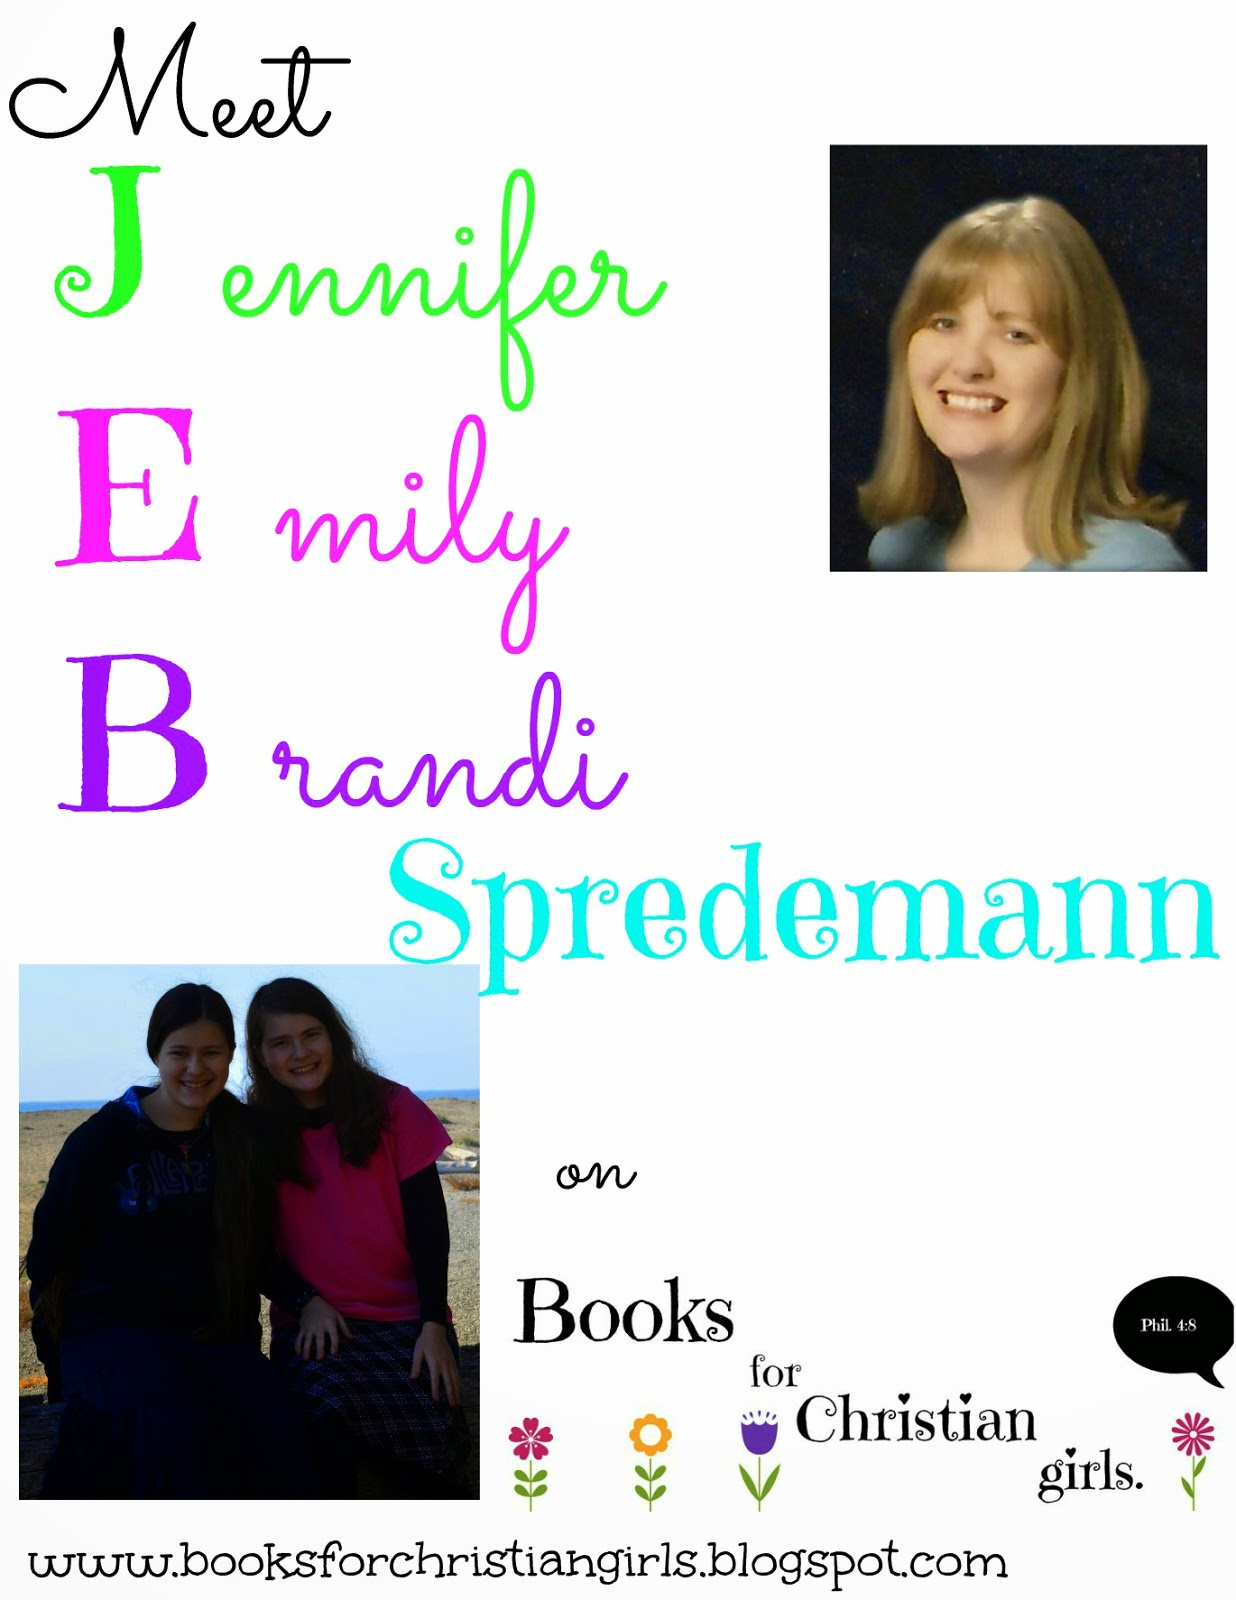 http://booksforchristiangirls.blogspot.com/2014/07/wrap-up-giveaway-last-day-of-jeb.html